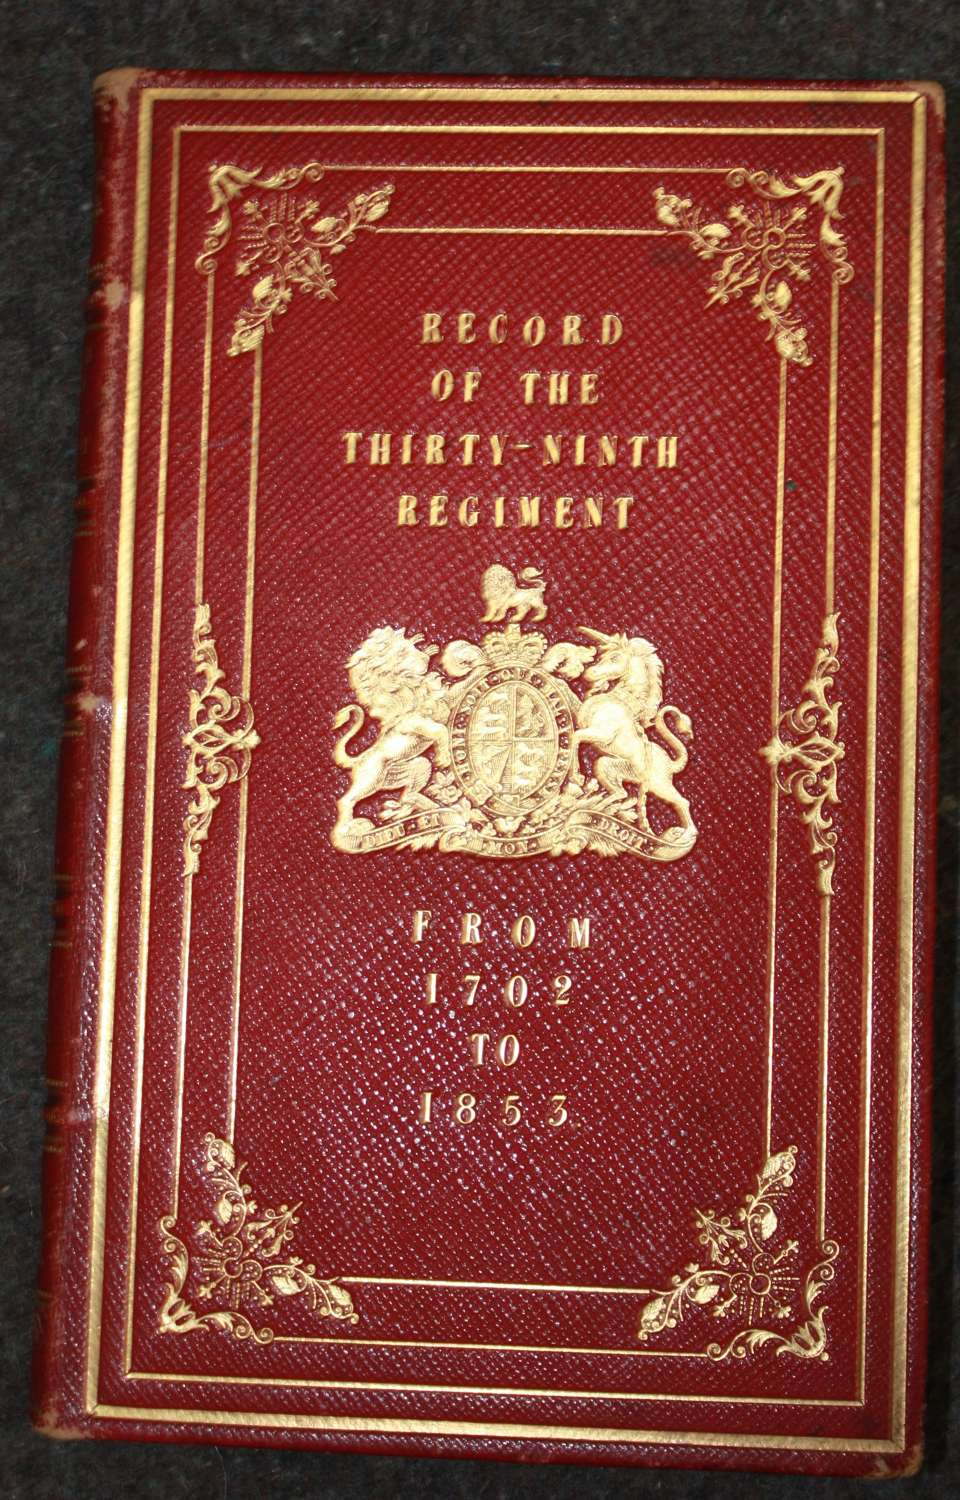 A 1853 COPY OF THE RECORD OF THE 39TH REGT BY RICHARD CANNON